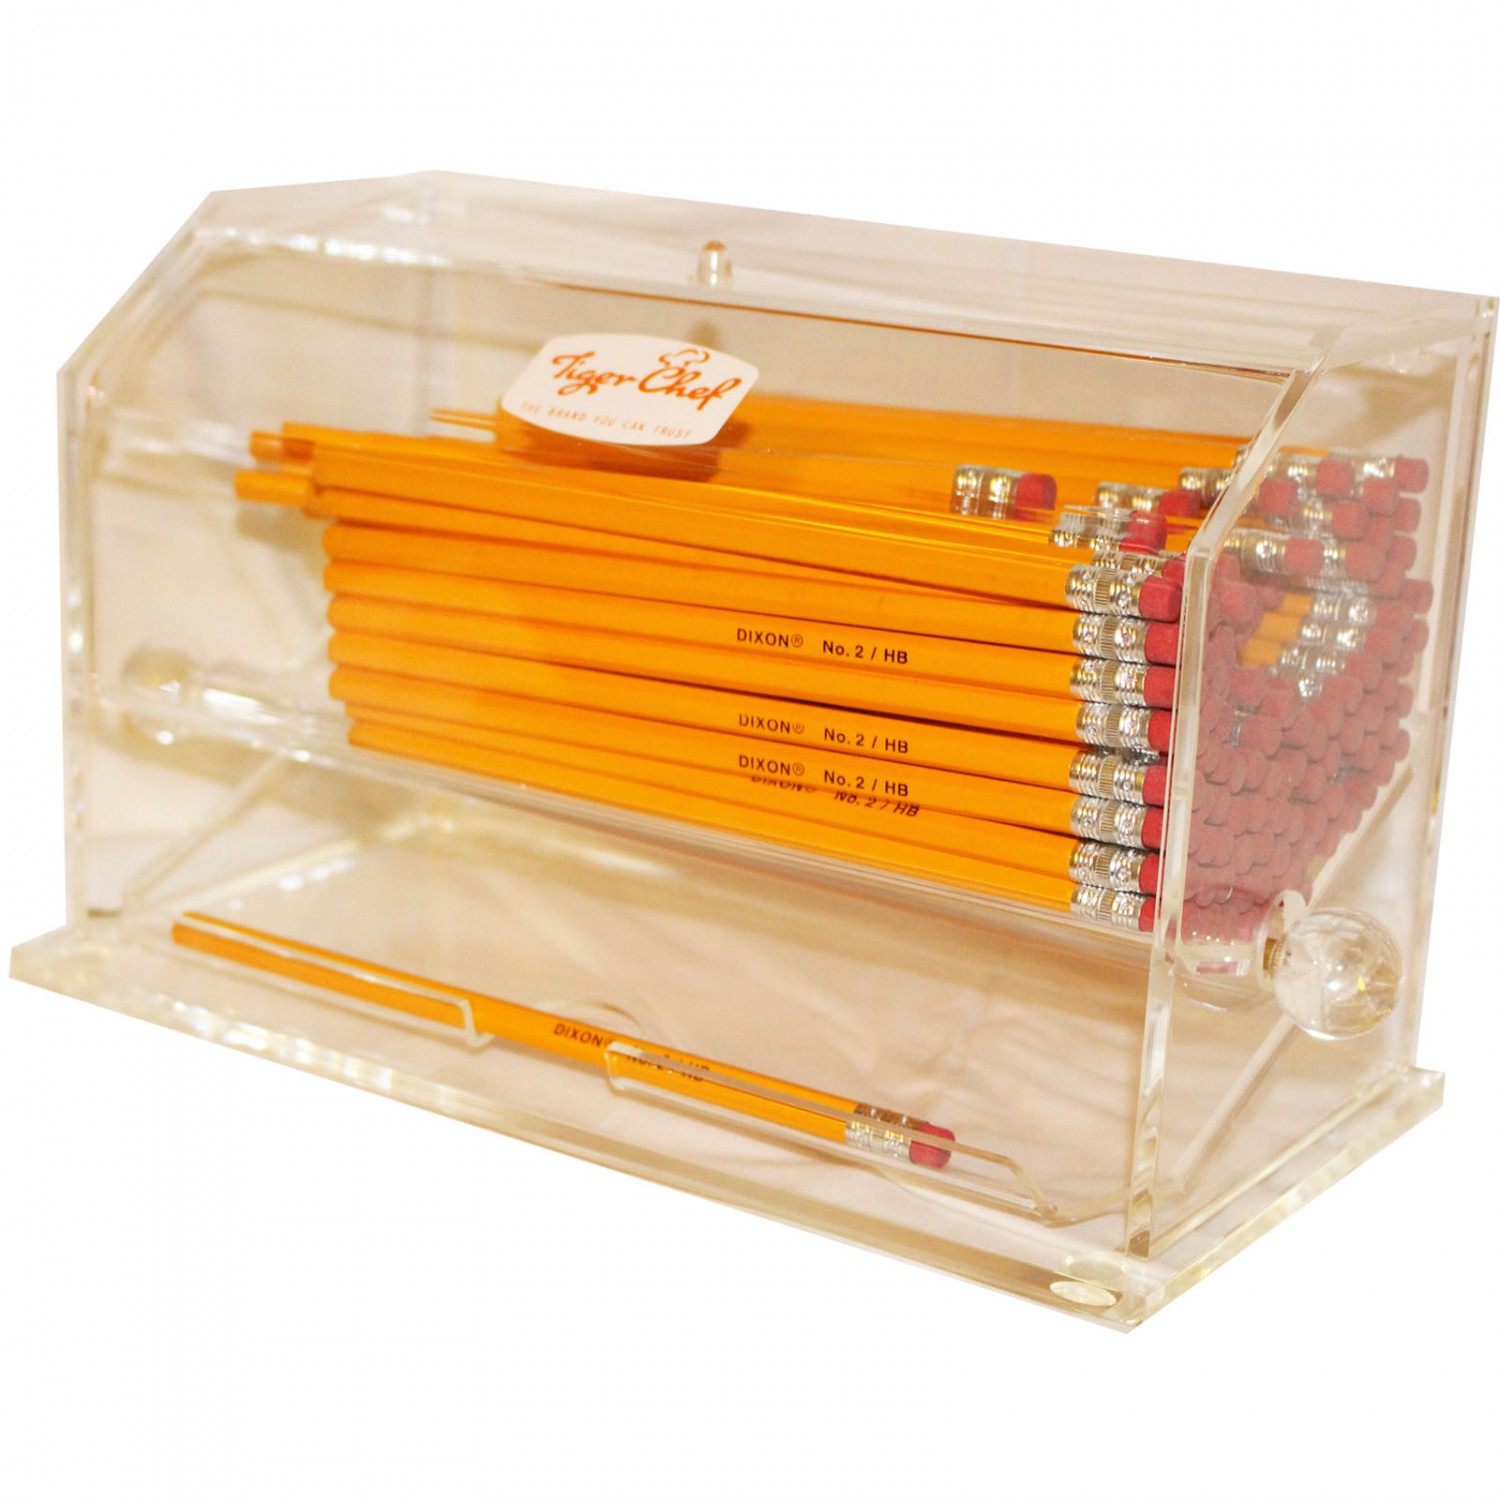 TigerChef Clear Acrylic Pen and Pencil Dispenser Teachers Gifts with 1 Dozen Pencils